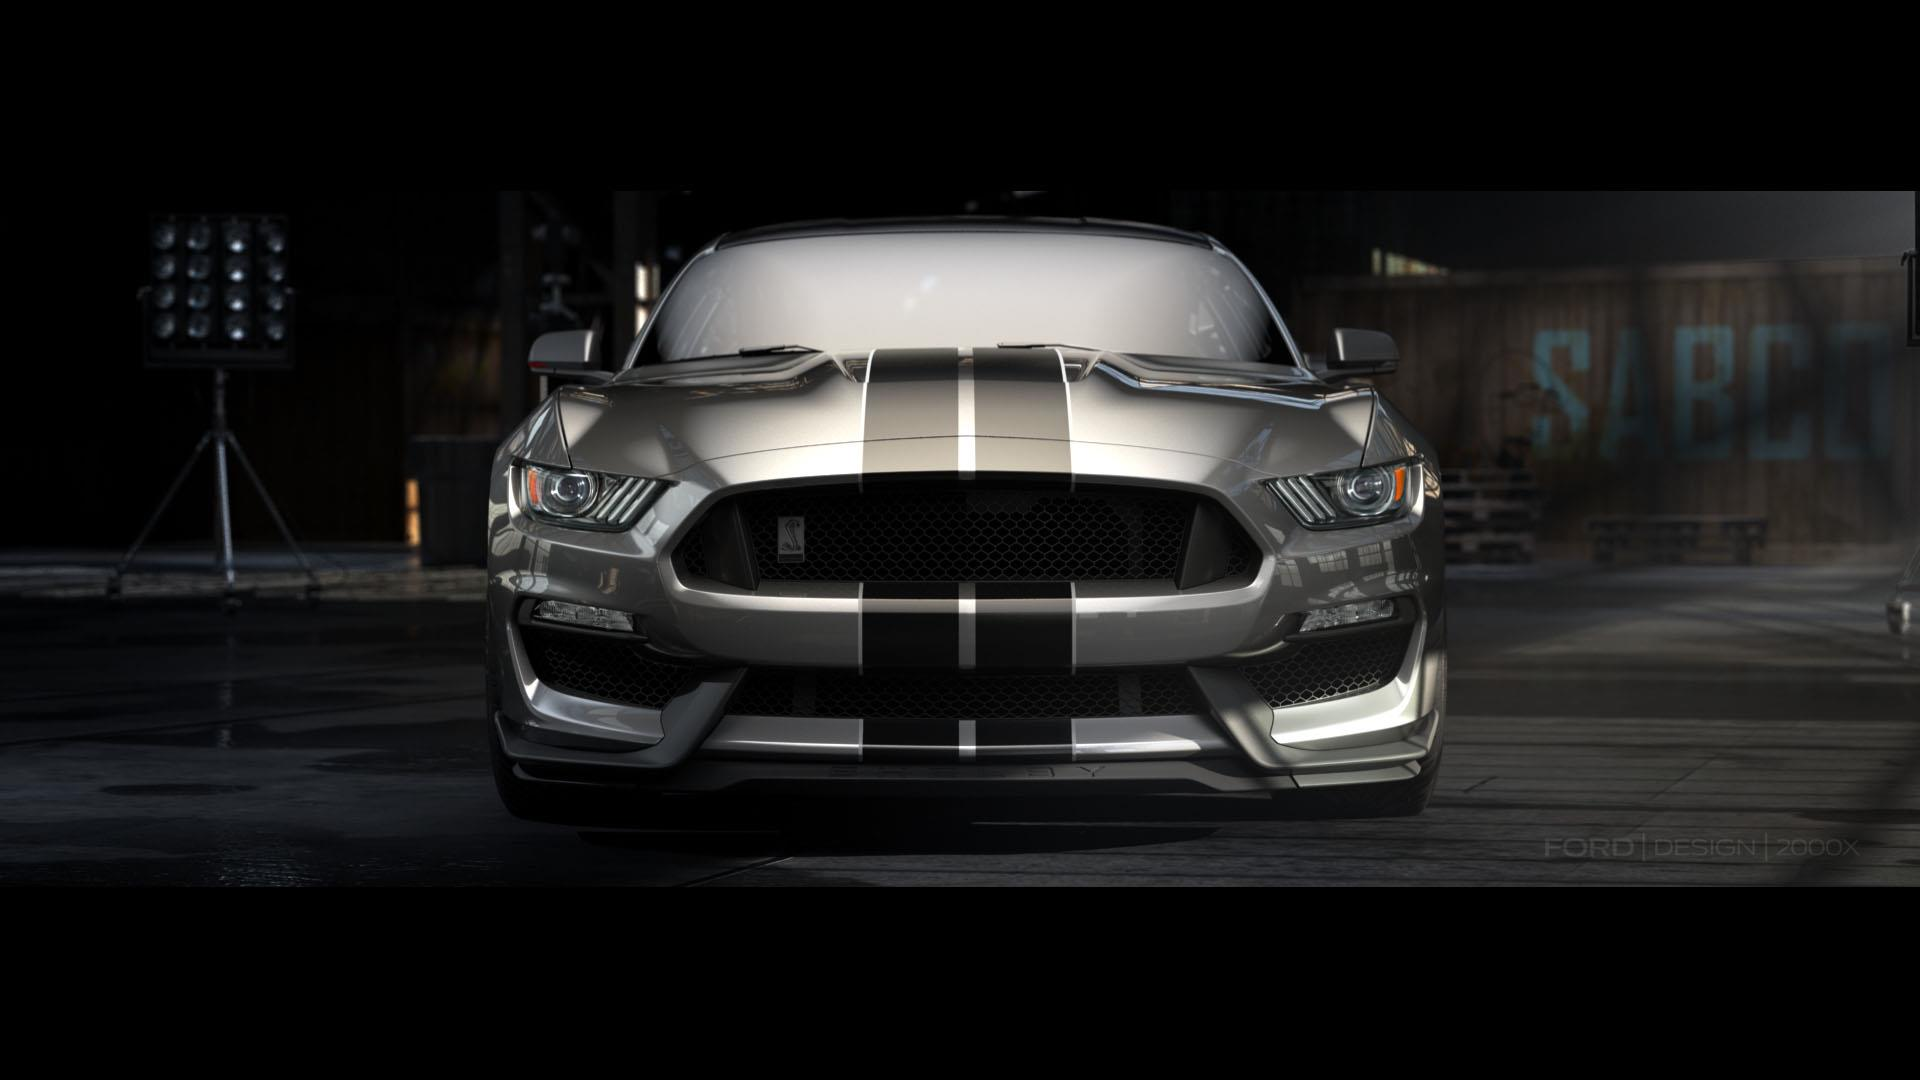 2016 Ford Mustang Shelby GT350 News and Information